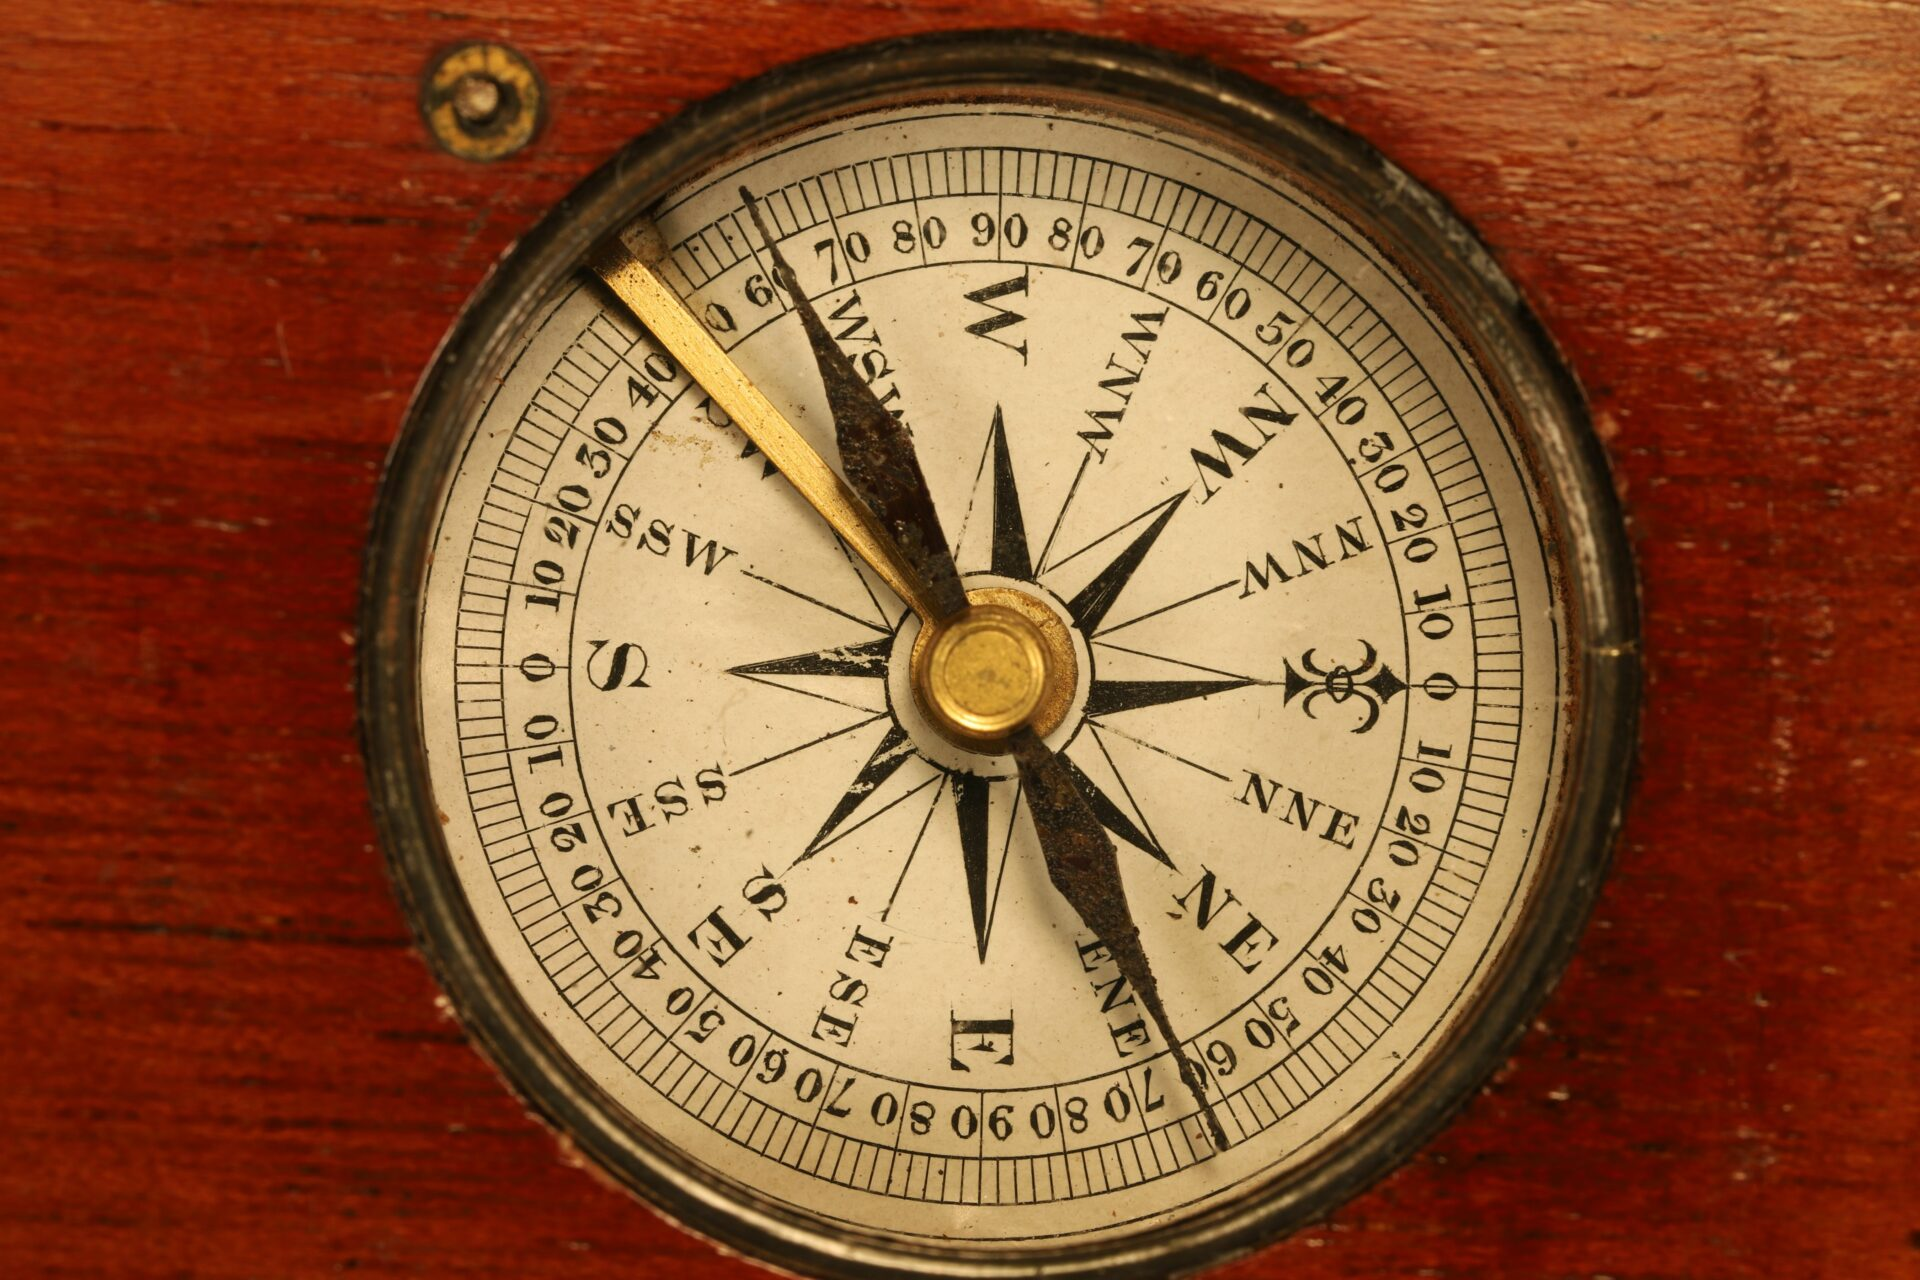 Close up of dial of Francis Barker Equinoctial Compass Retailed by Negretti & Zambra c1870